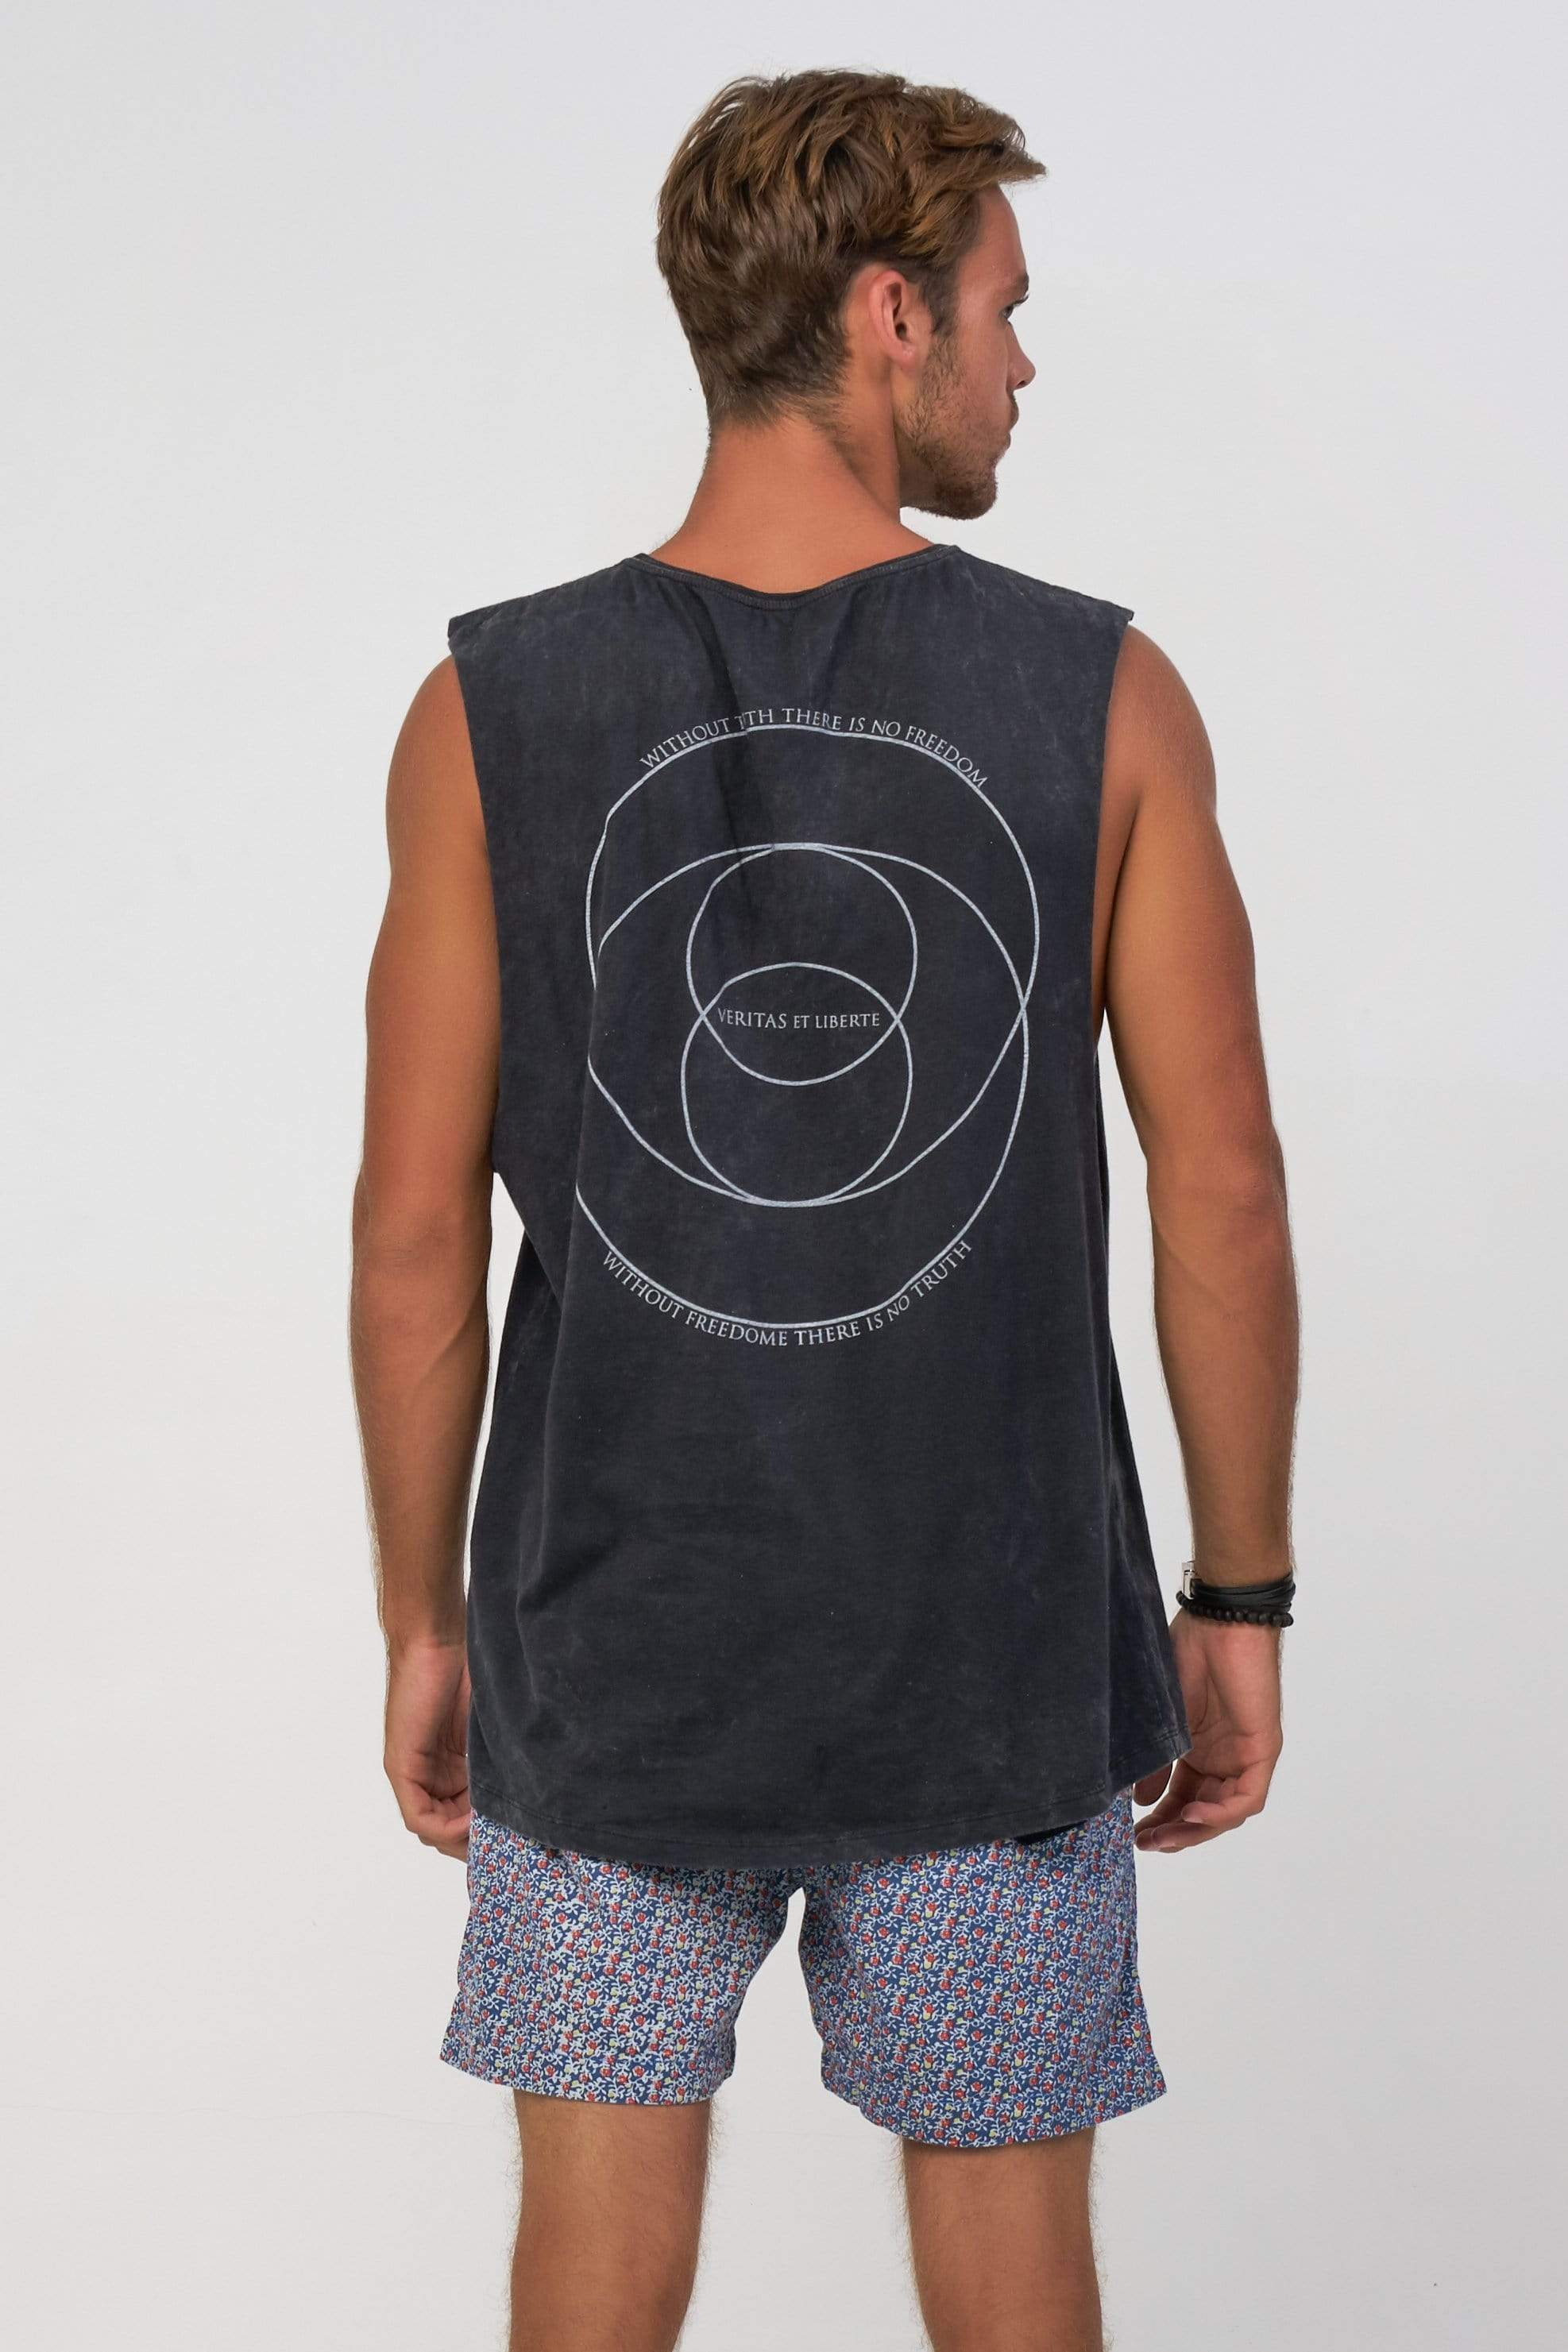 Lvm Golden Ratio - Mens Muscle Tank - VERITAS & LIBERTE